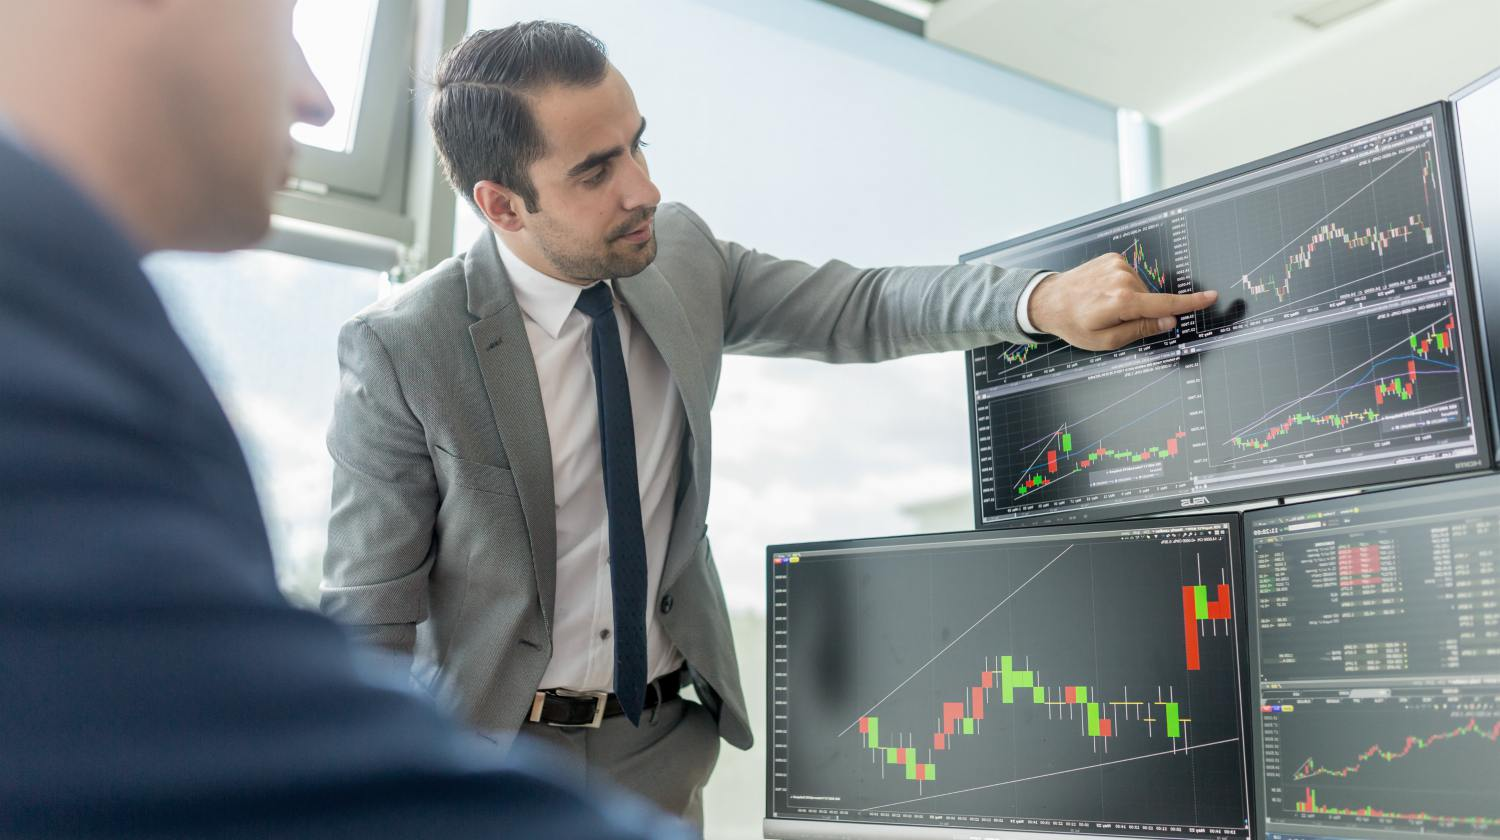 Featured | businessman checking stocks | Top Pharmaceutical Stocks To Invest In (This 2019) Inside Your IRA | best pharma stocks